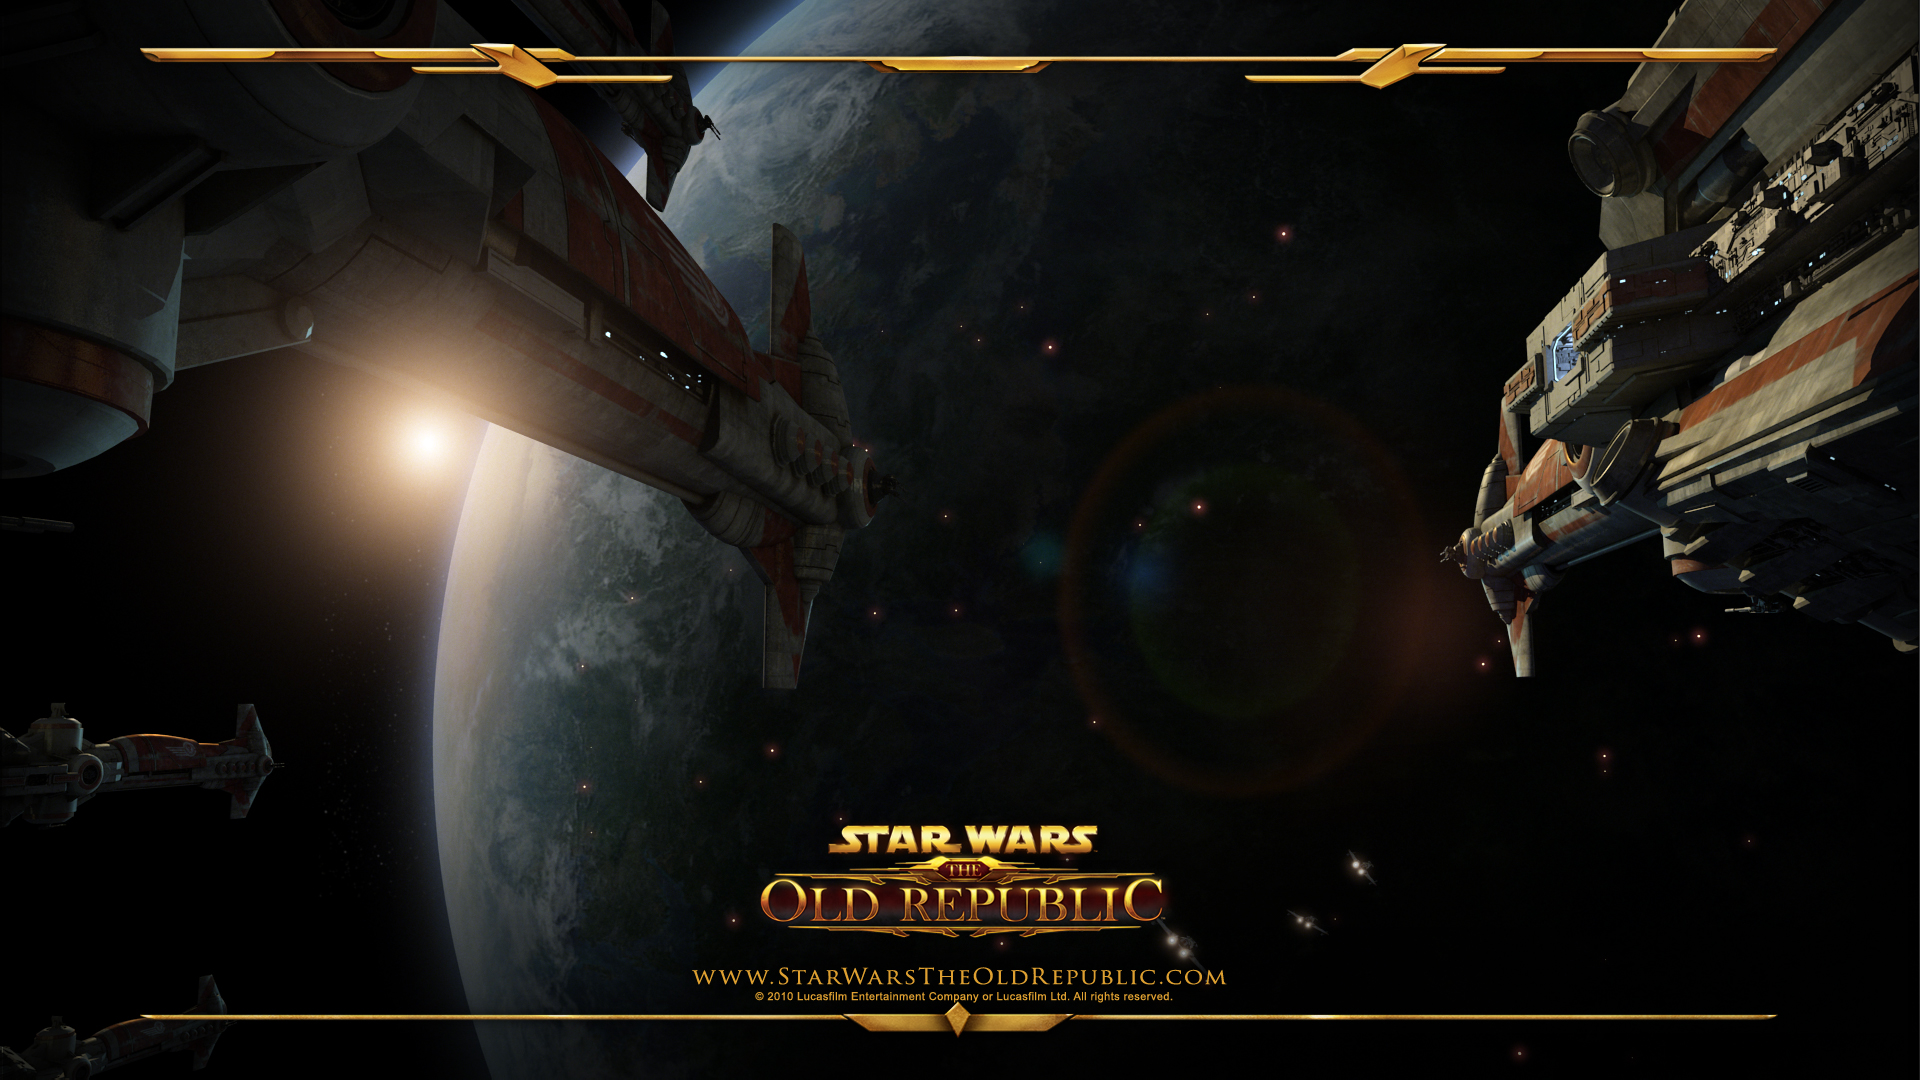 Star Wars the Old Republic wallpaper 35